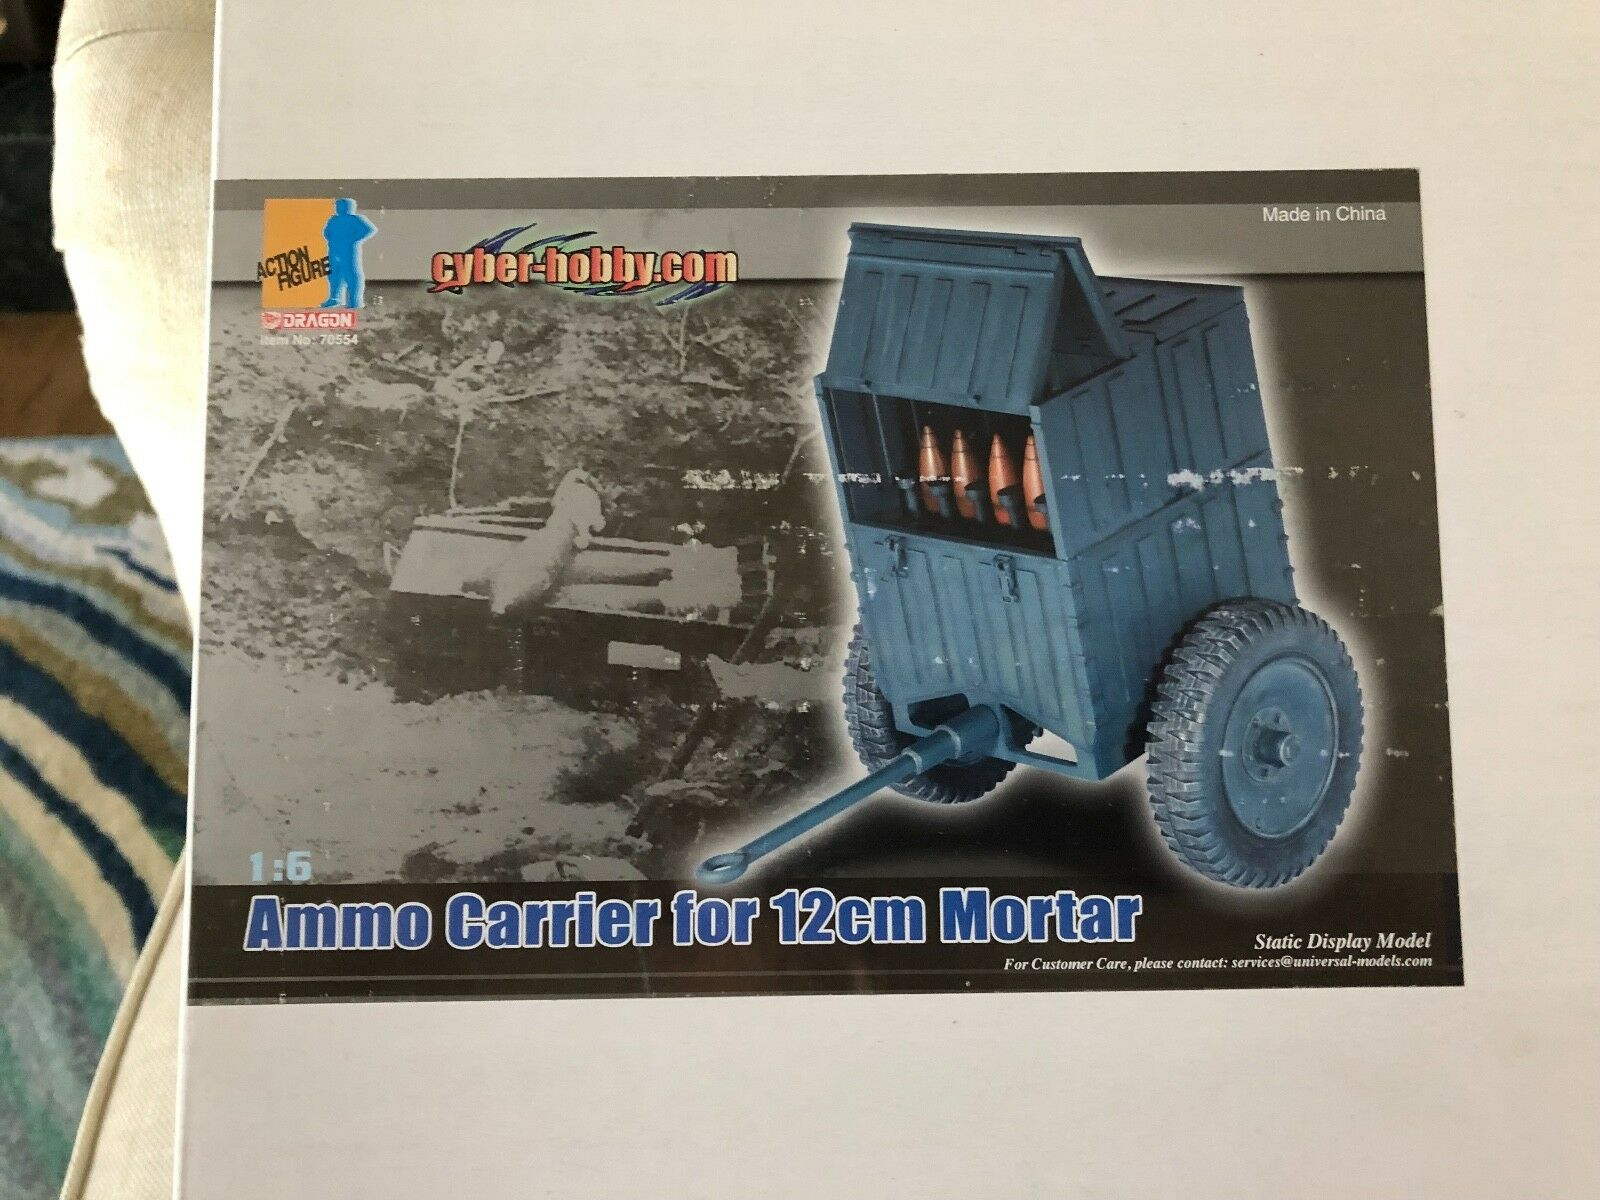 Cyber Hobby WWII 1 6 Ammo Carrier Carrier Carrier for 12cm Mortar 2a841c